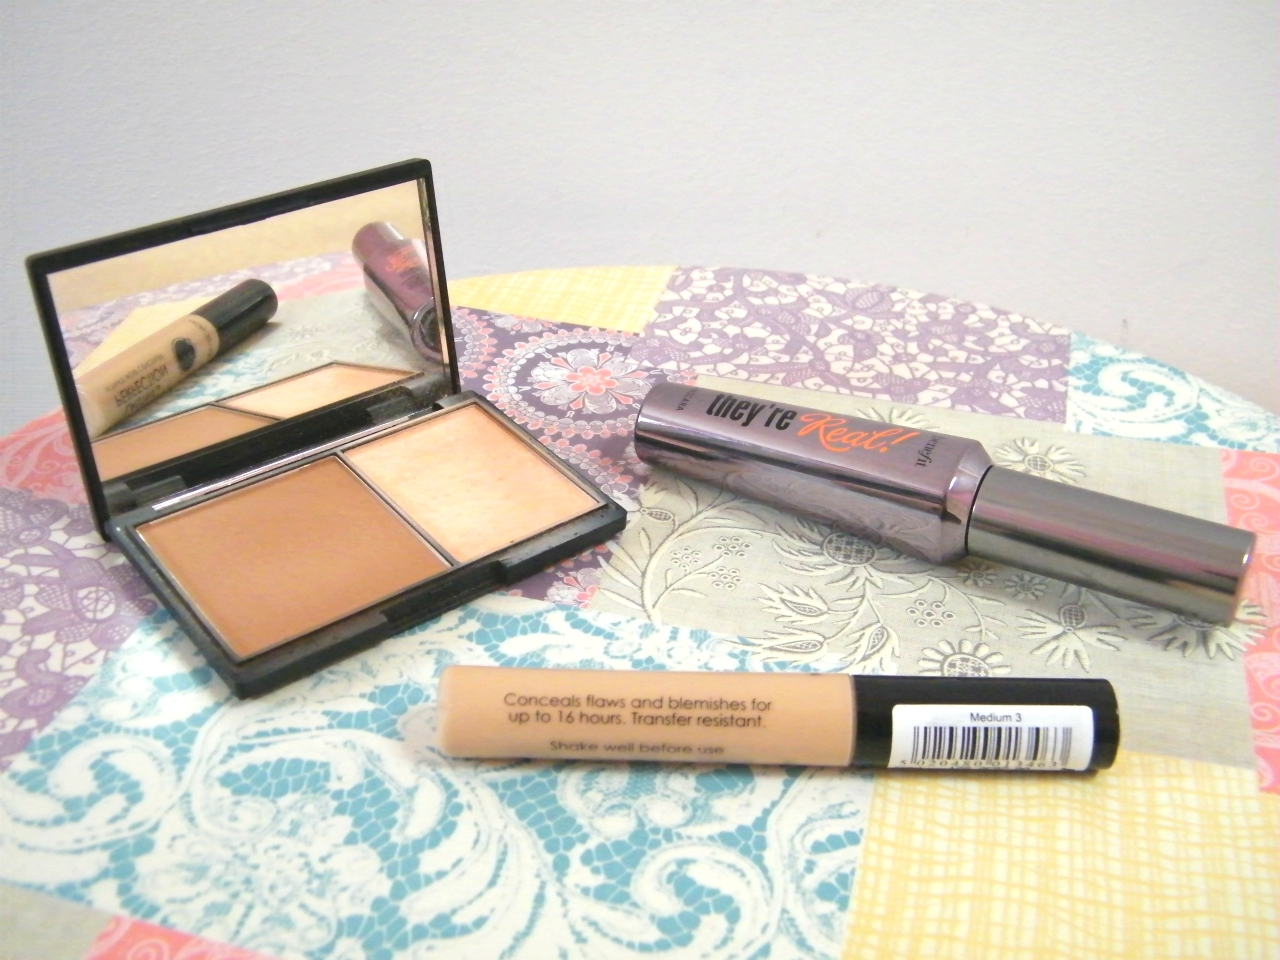 Sleek Face Contour Kit, Benefit They're Real Mascara and Collection Lasting Perfection Concealer